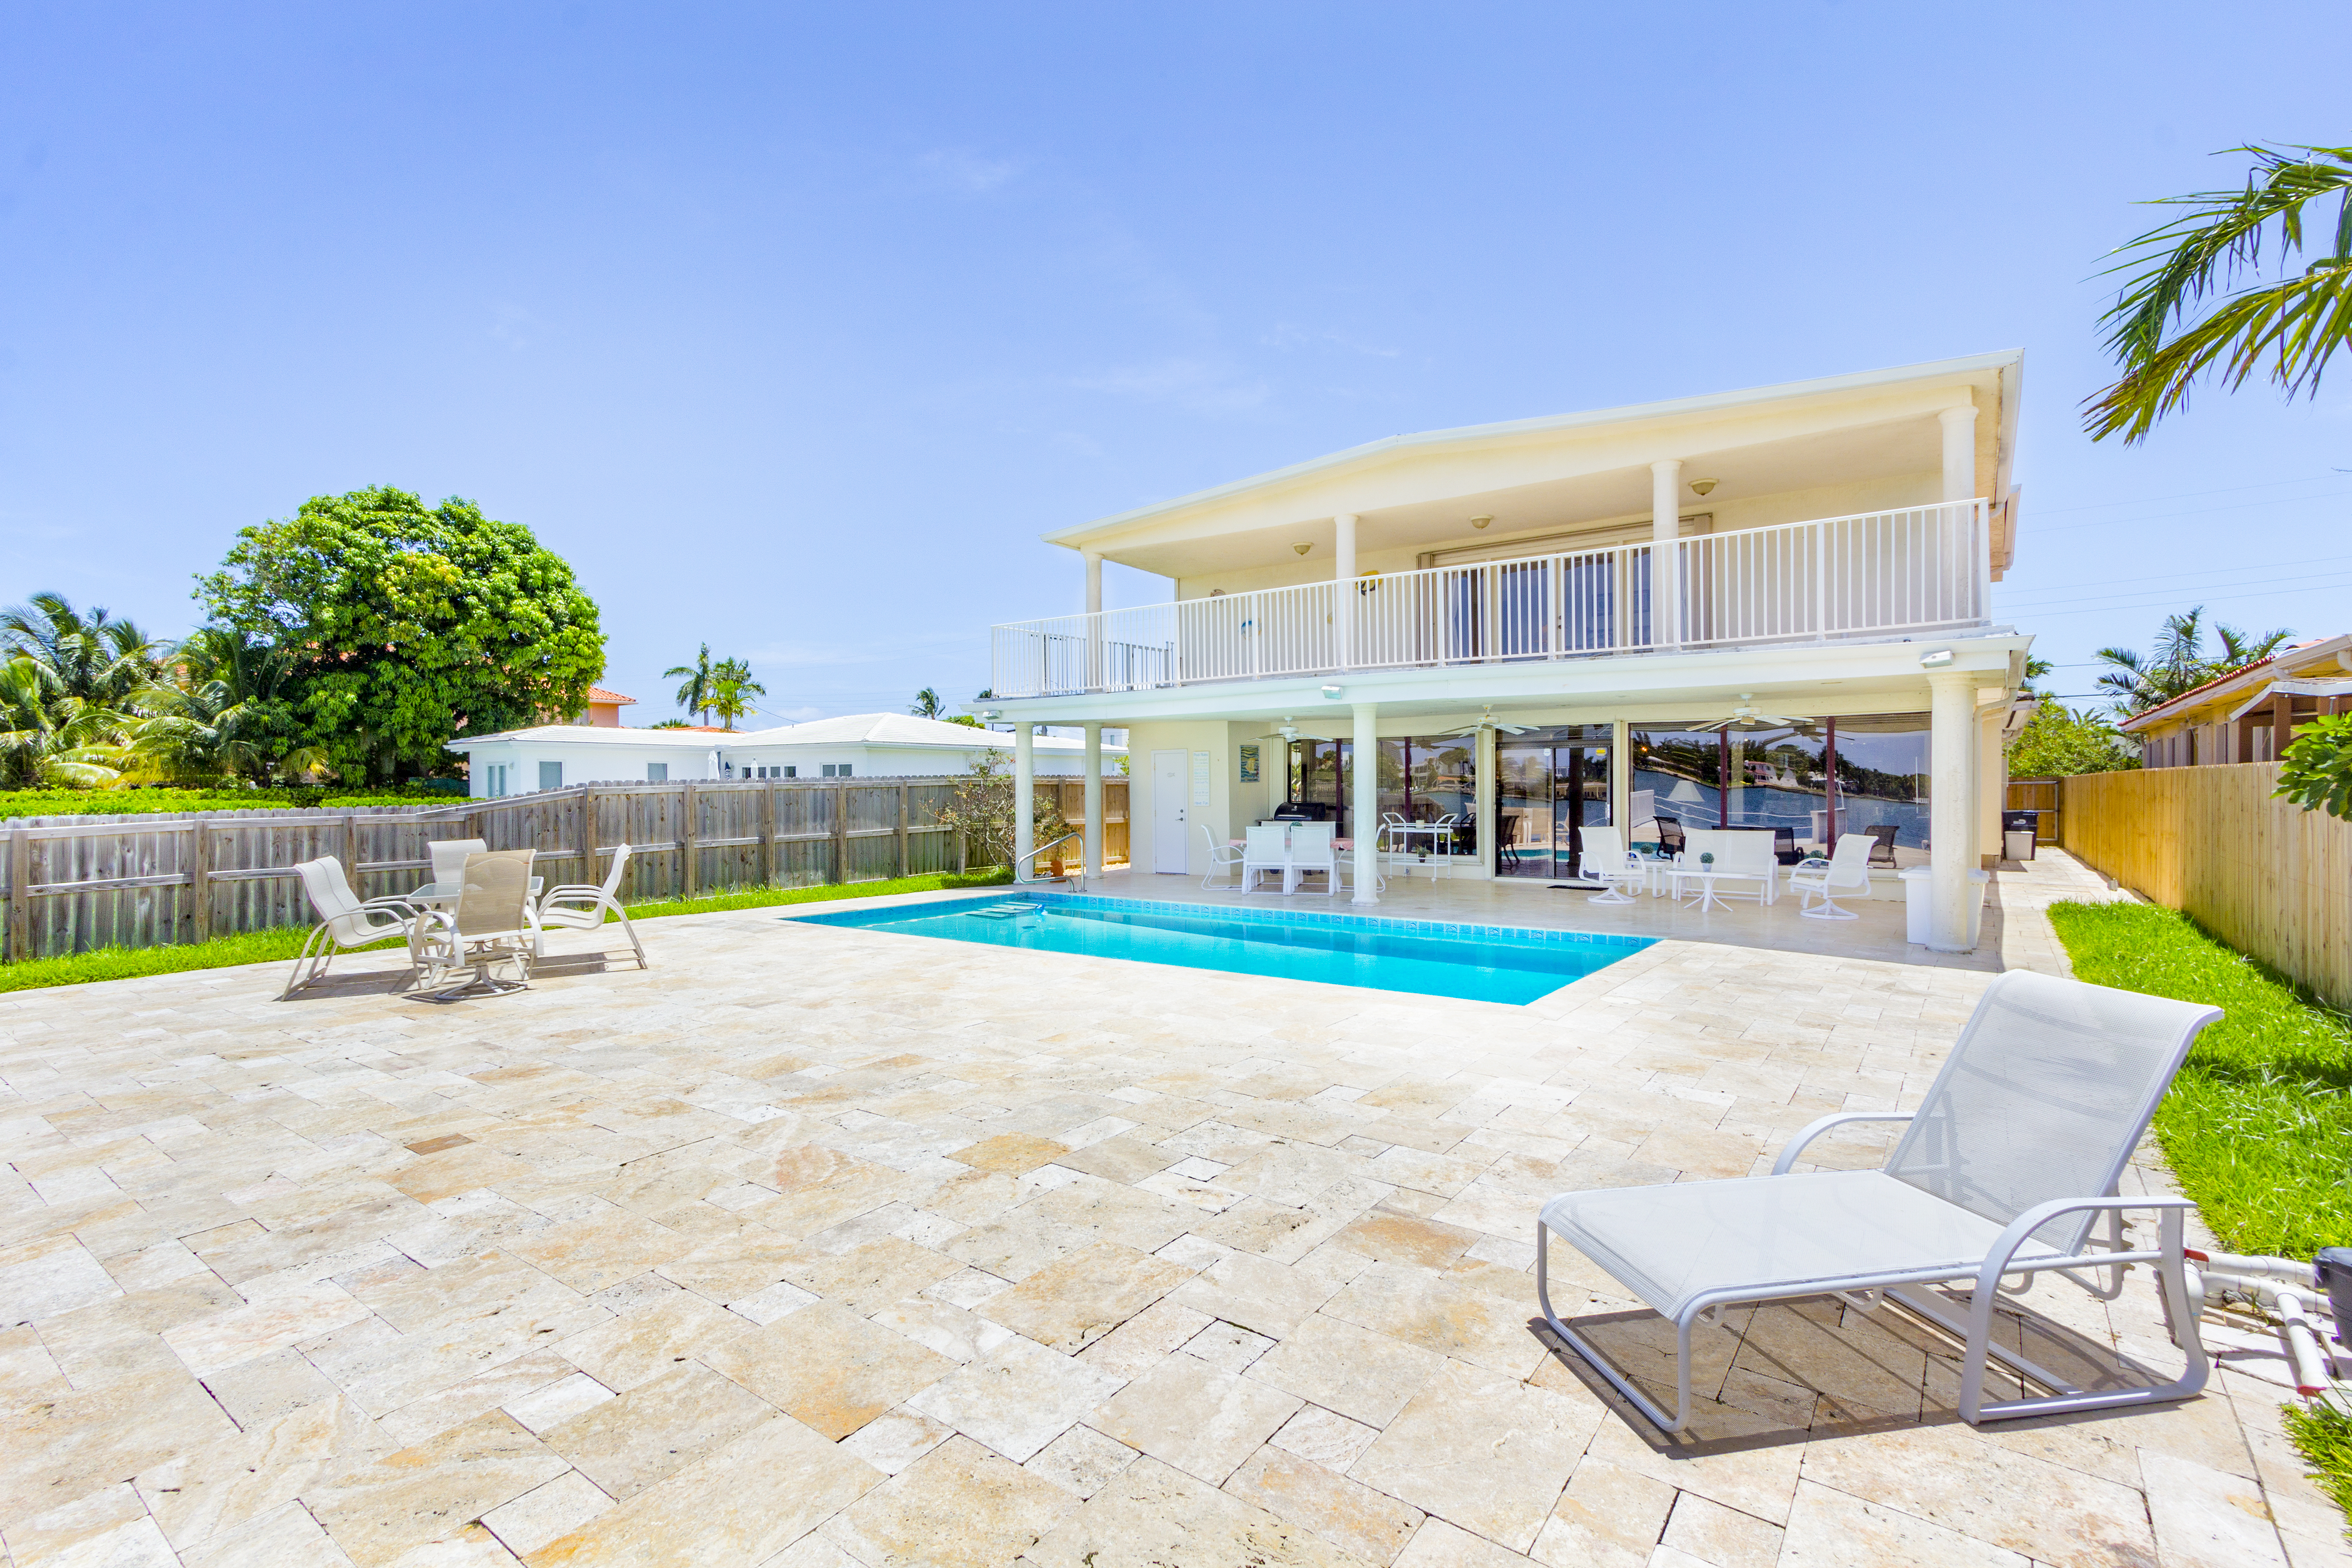 Single Family Home for Sale at 1171 Stillwater Dr Miami Beach, Florida, 33141 United States